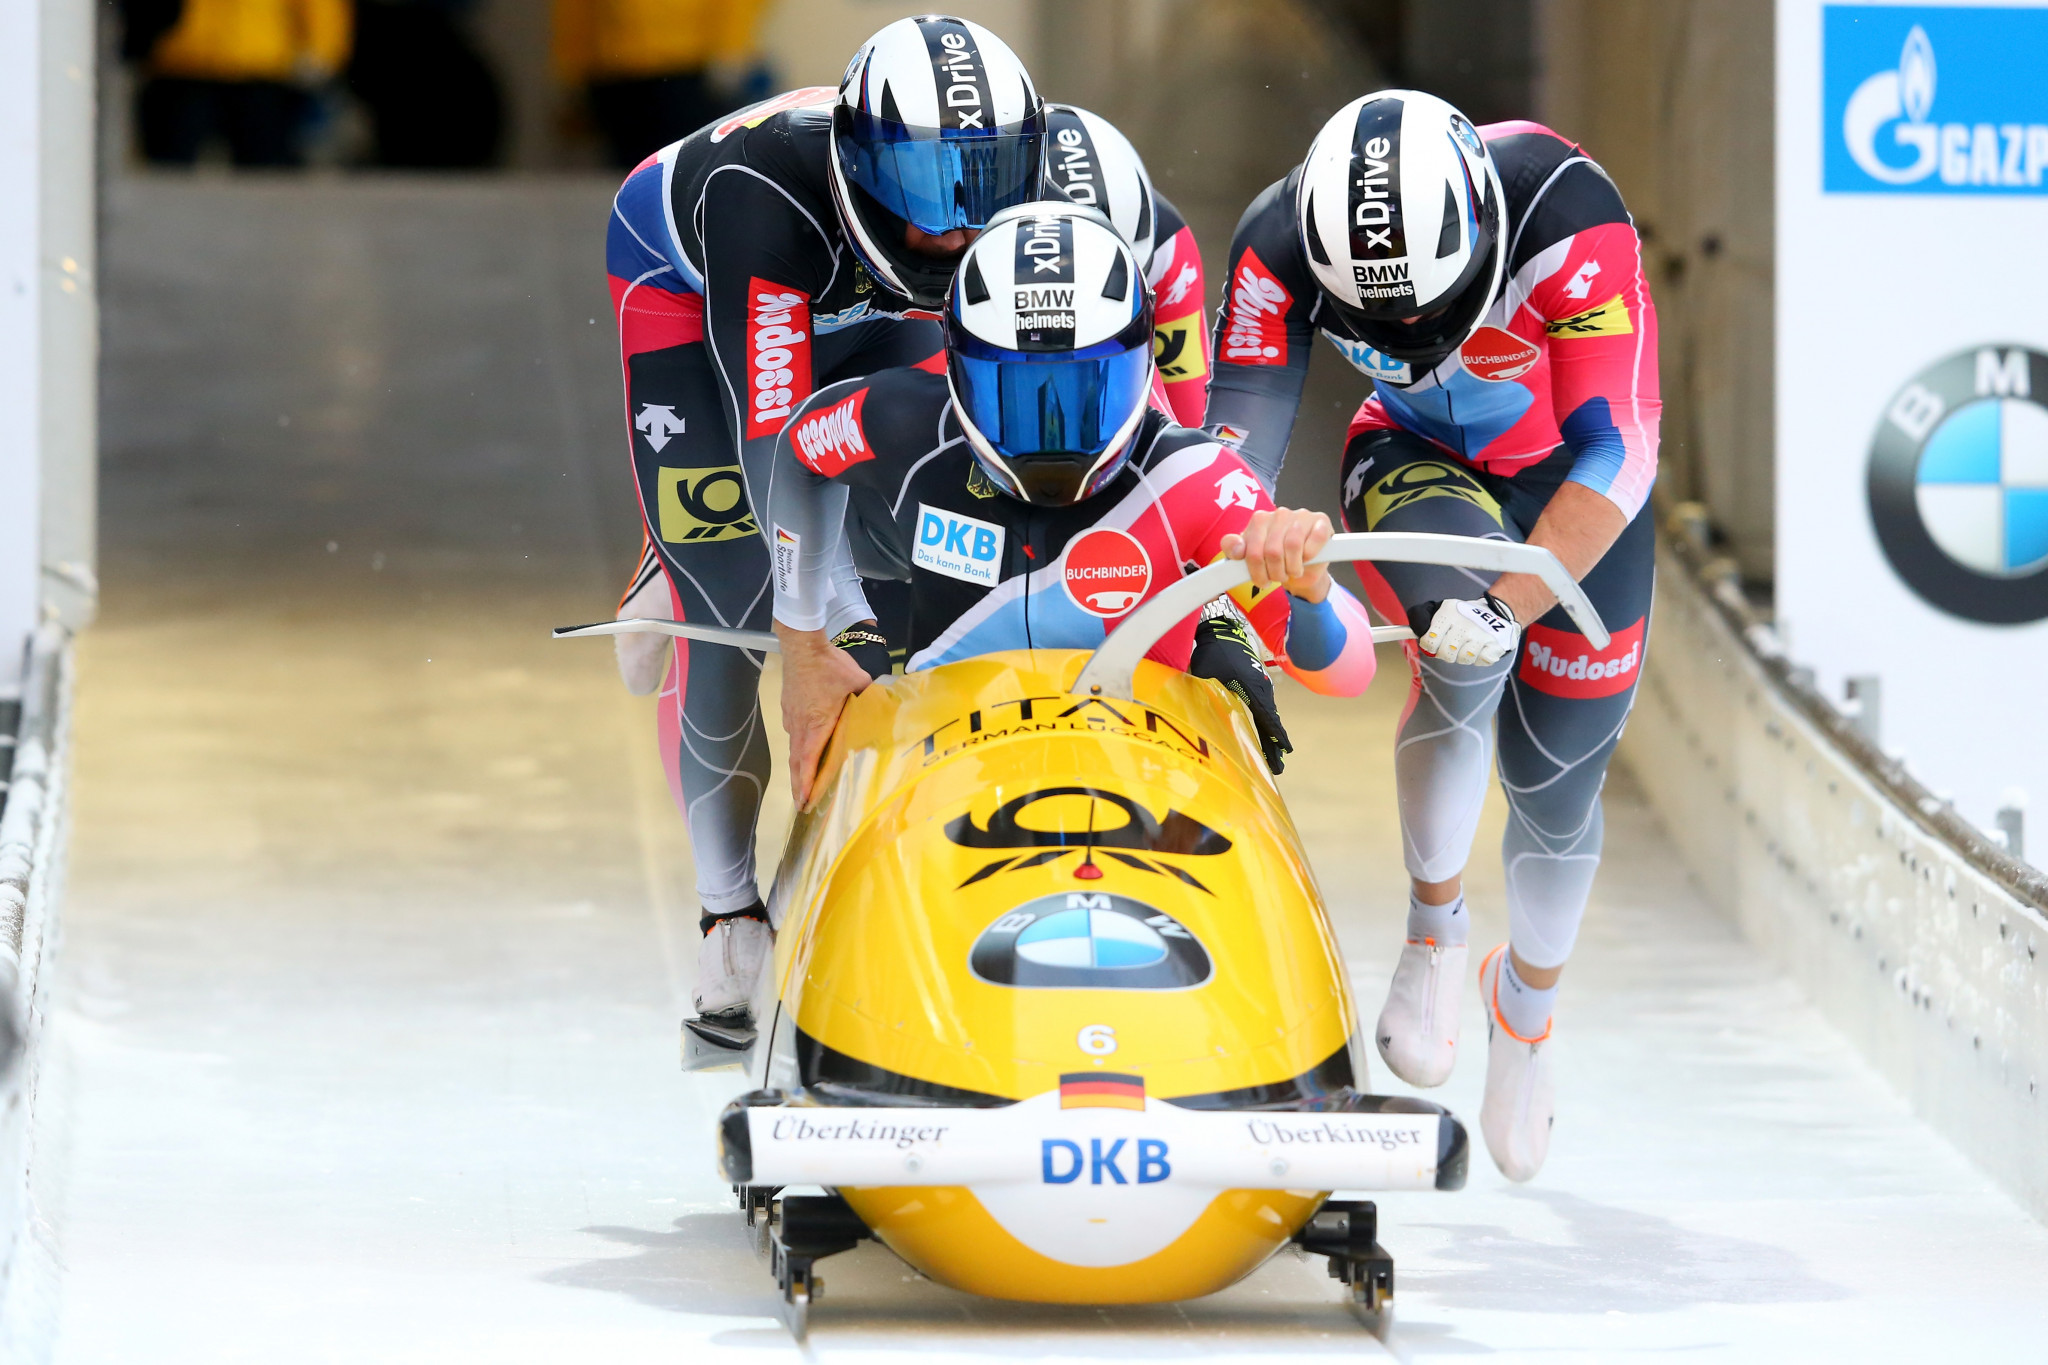 Lochner earns IBSF four-man World Cup title even though finishes only fourth at final event